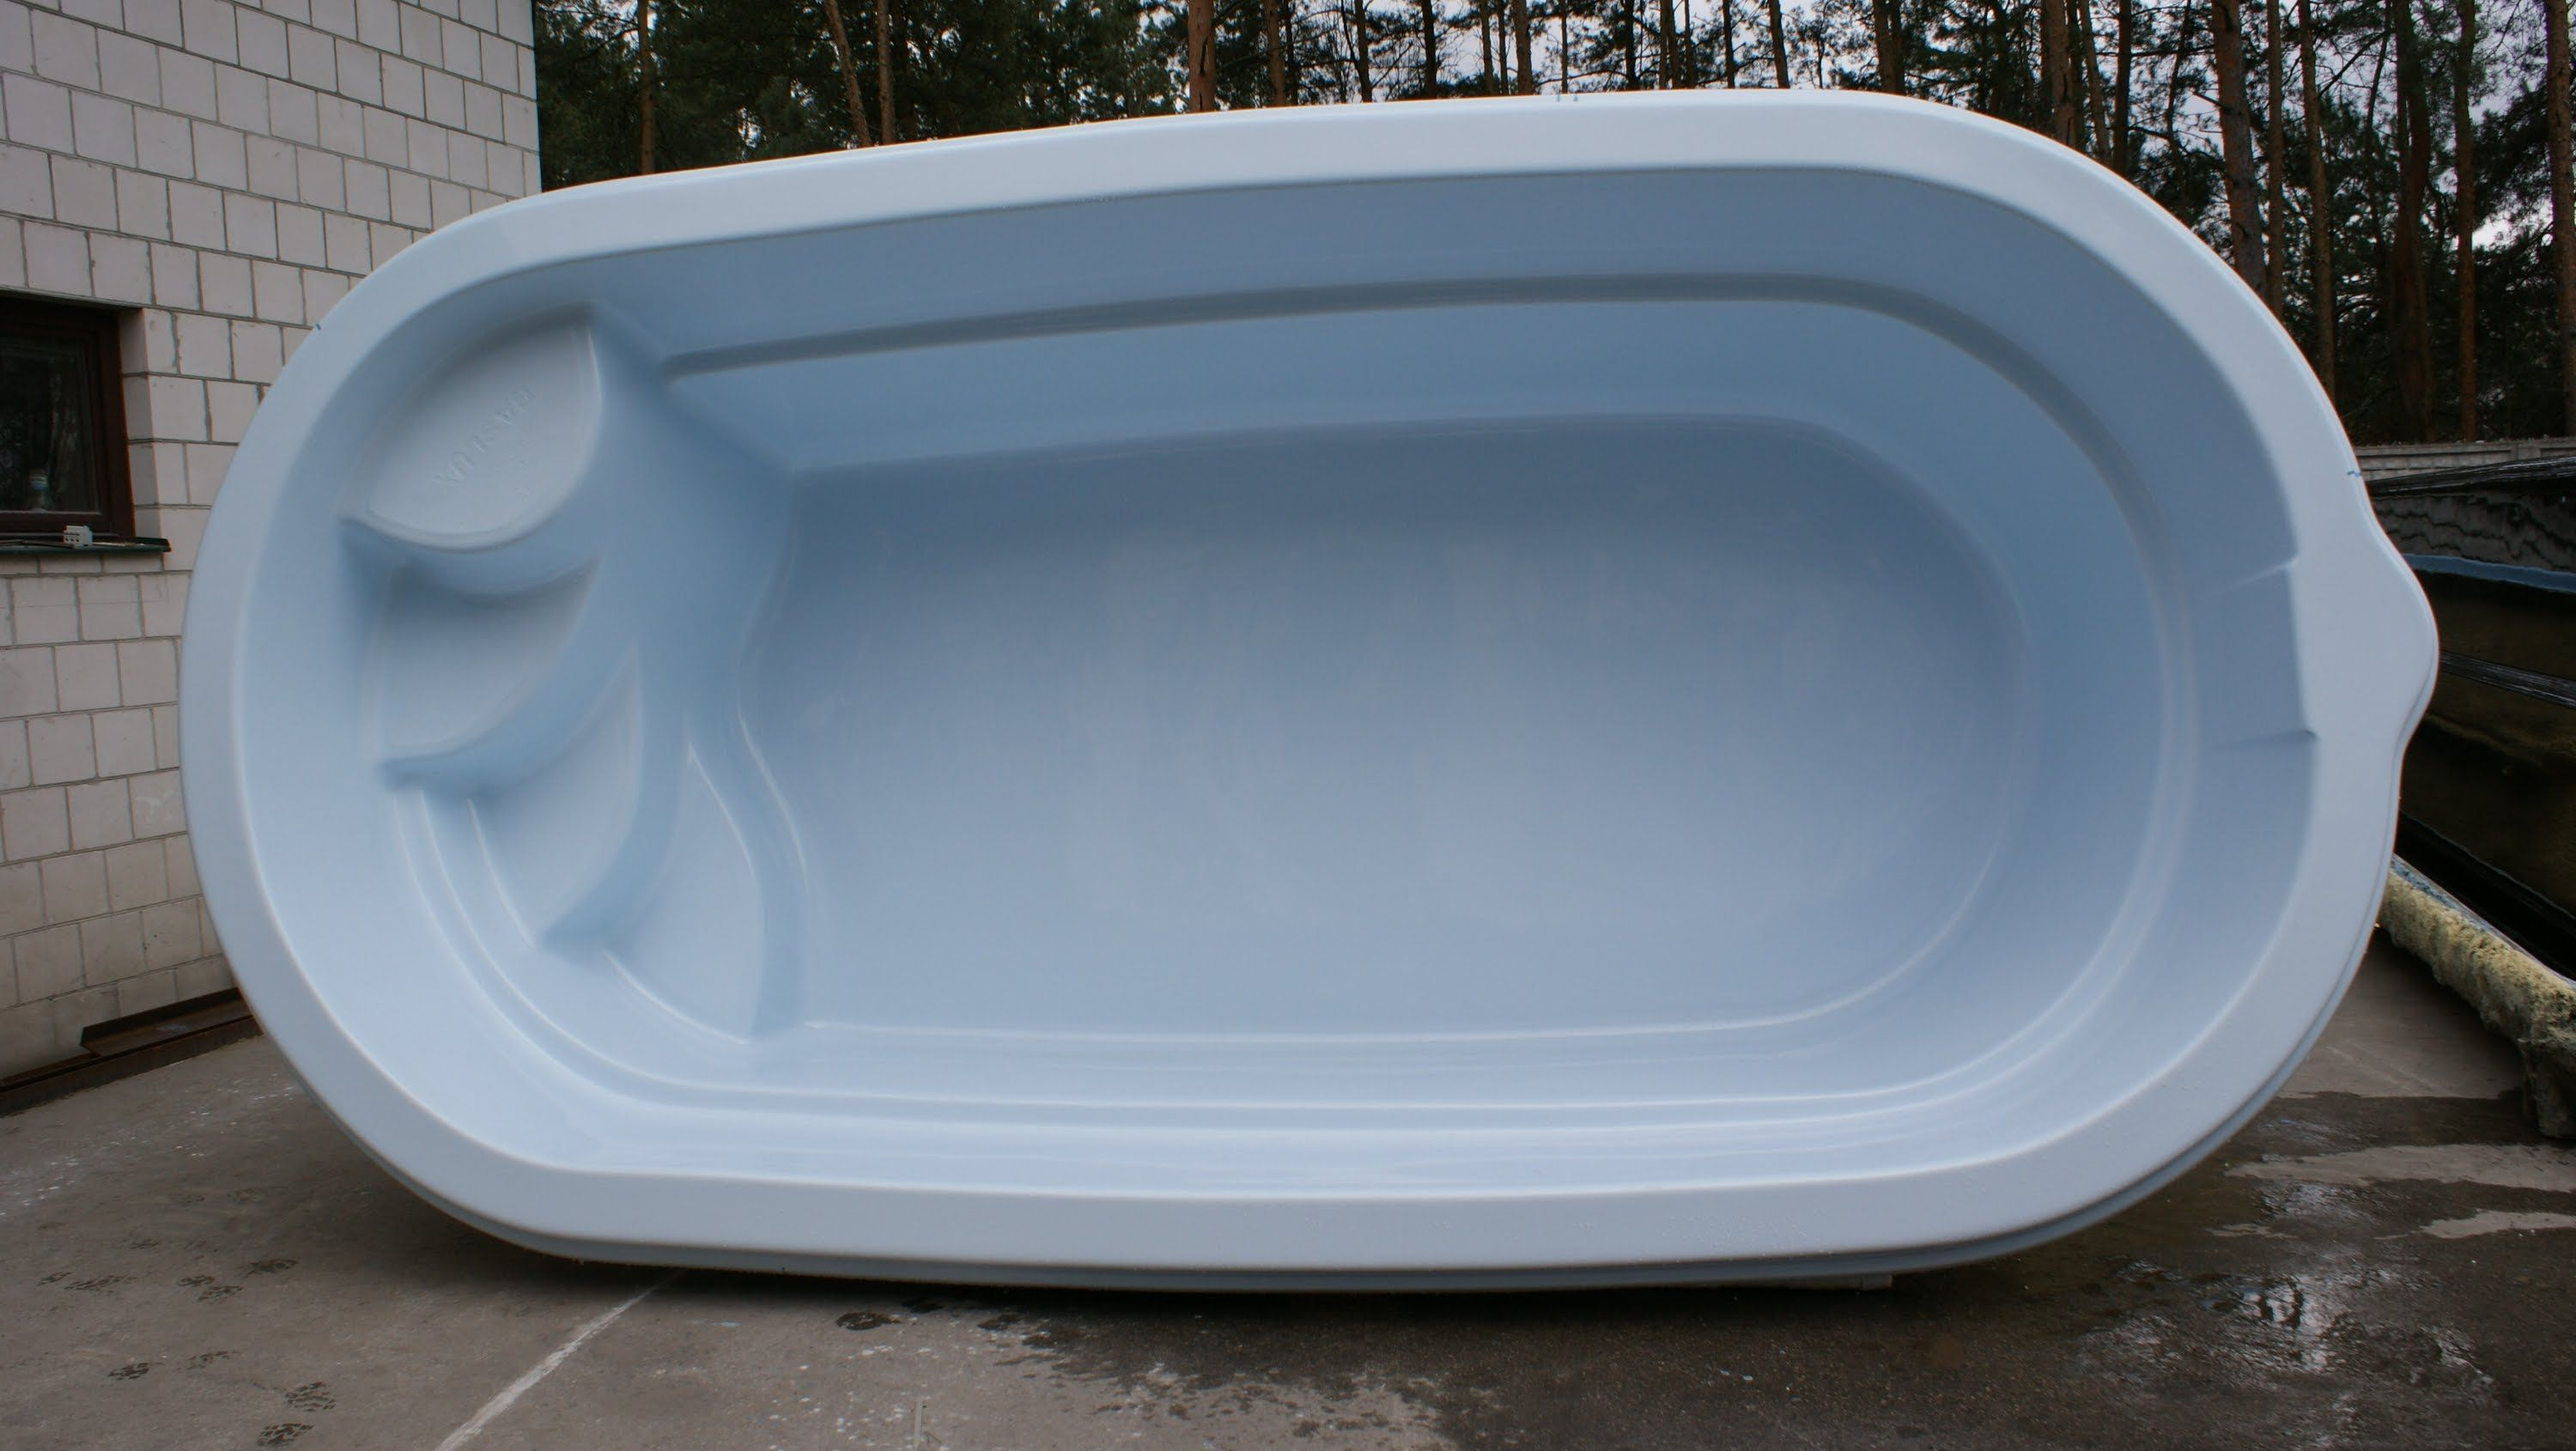 Piscine coque pas cher https for Coque piscine 3x3